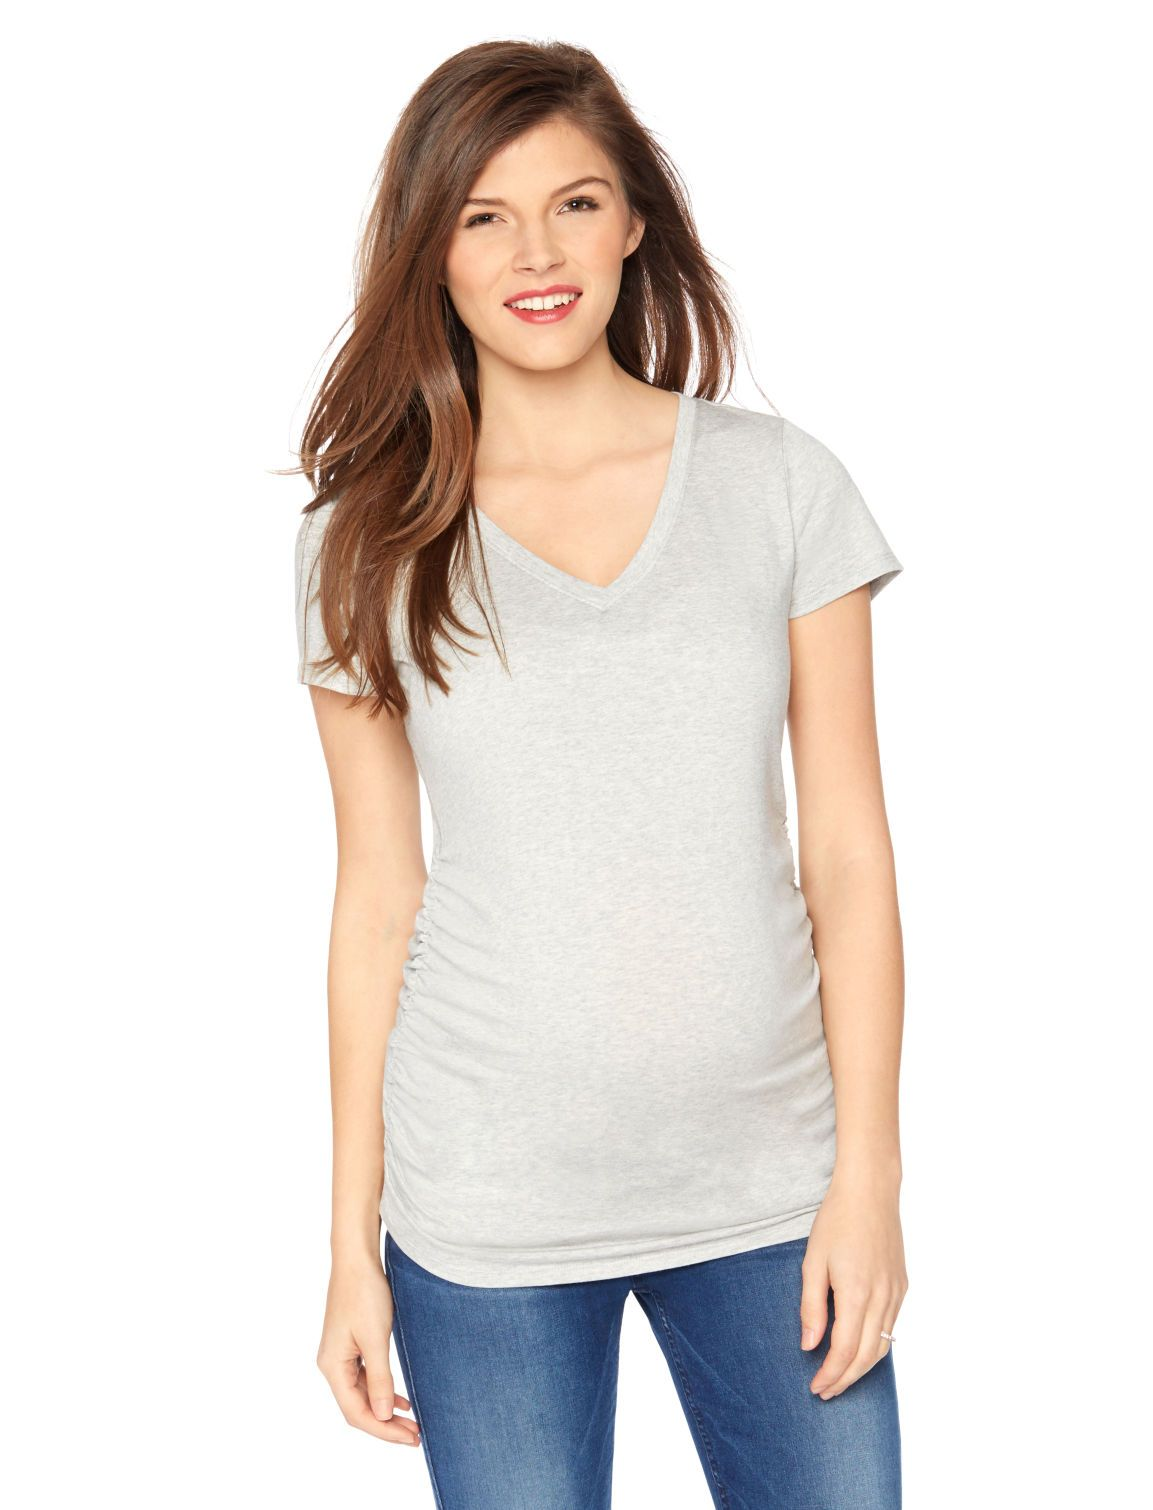 7b4caa59a136a A grey shirt that goes with any outfit | Short sleeve deep v-neck cuffed  maternity t shirt by Motherhood Maternity